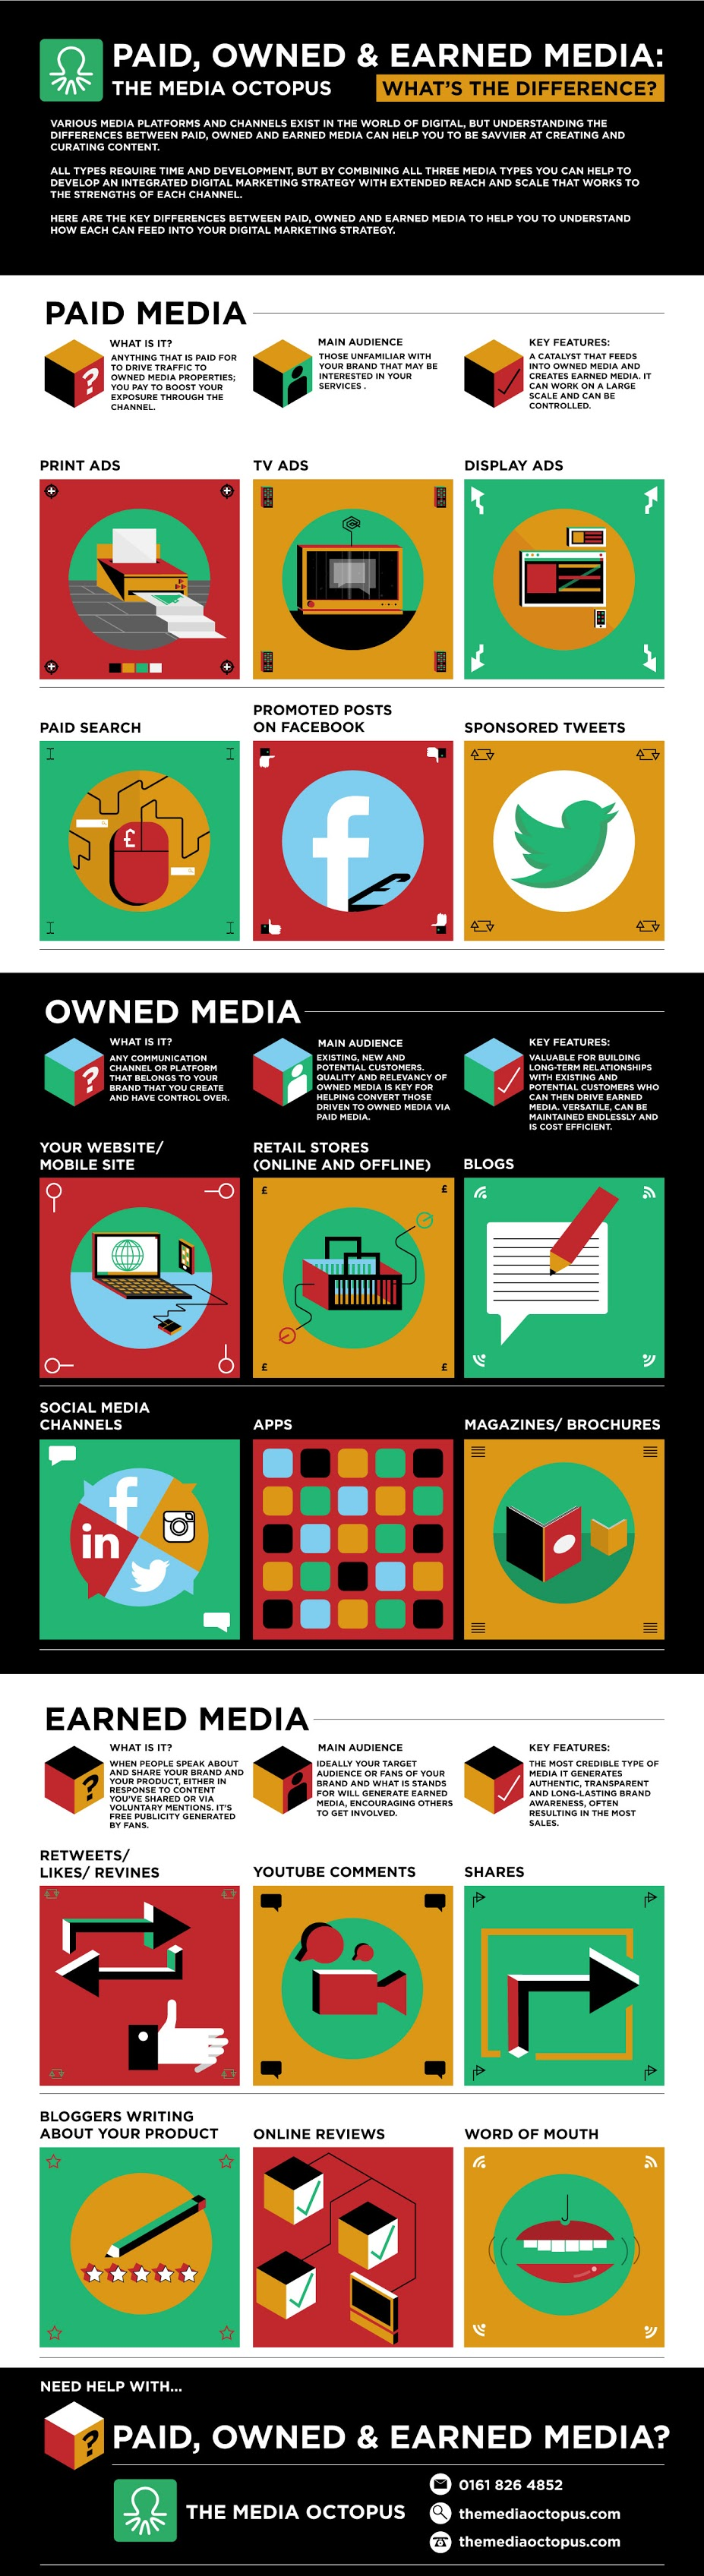 Digital-Marketing-Paid-Owned-and-Earned-Media